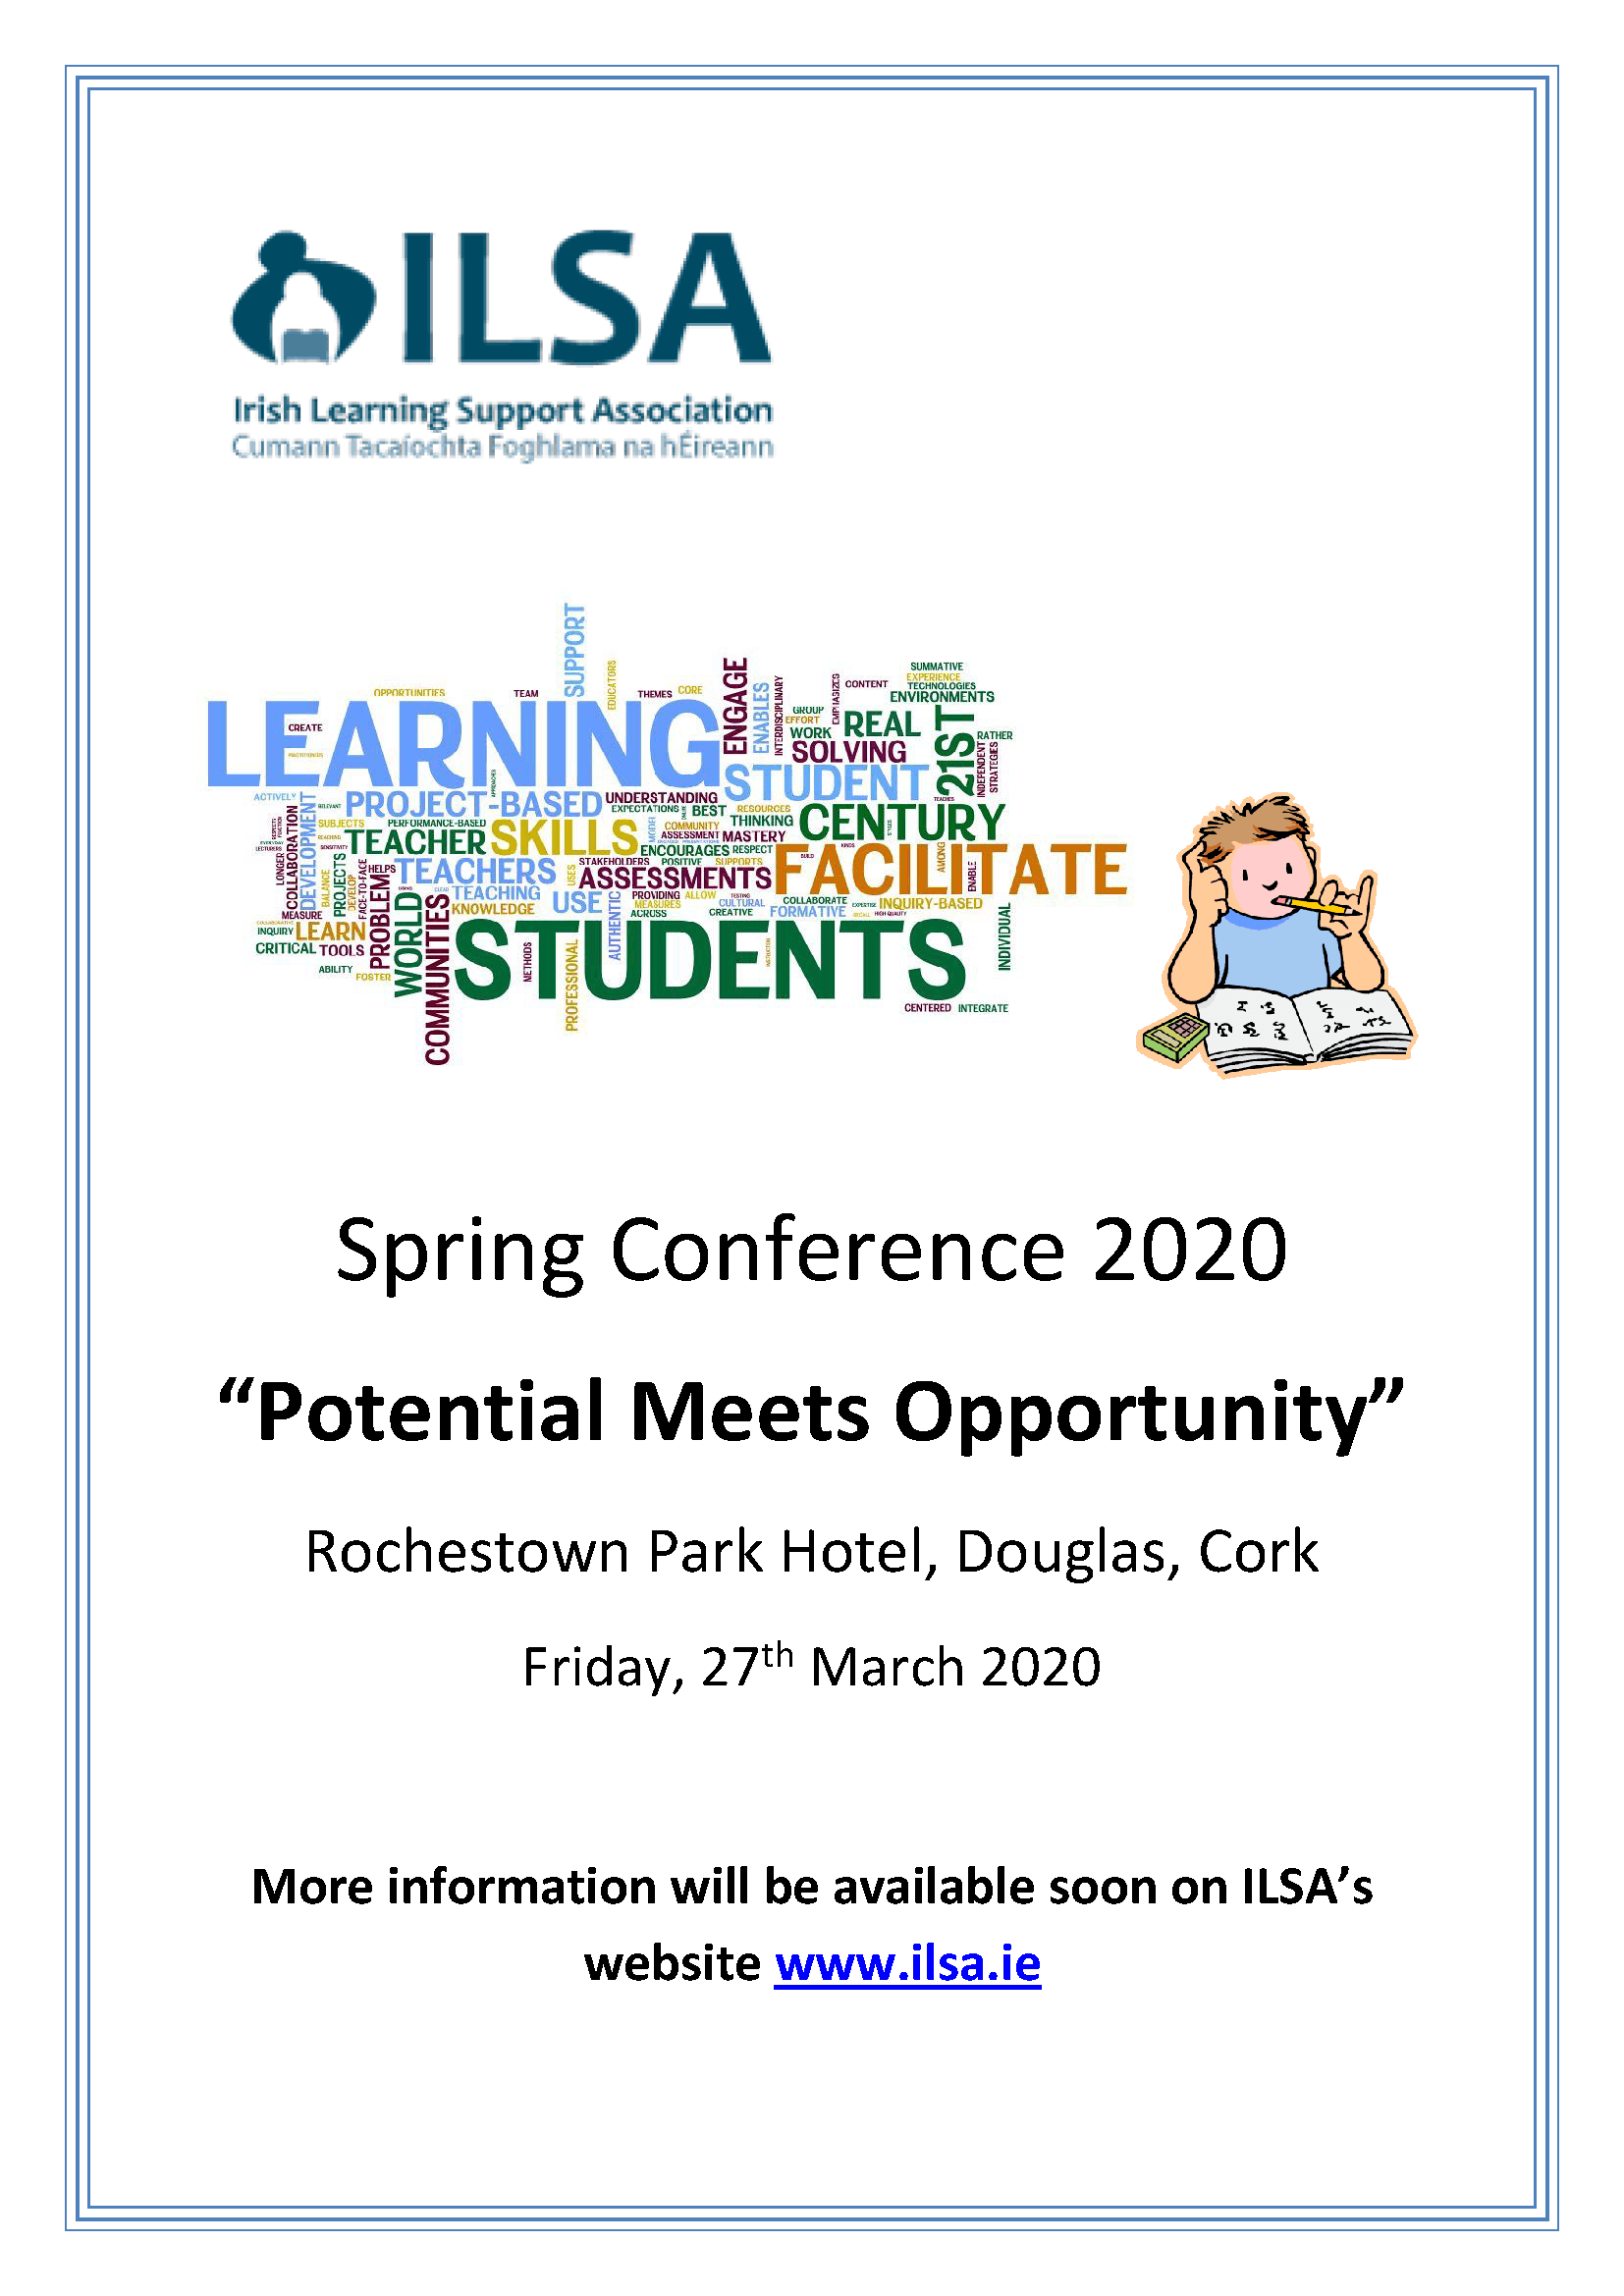 Poster for Spring Conference 2020